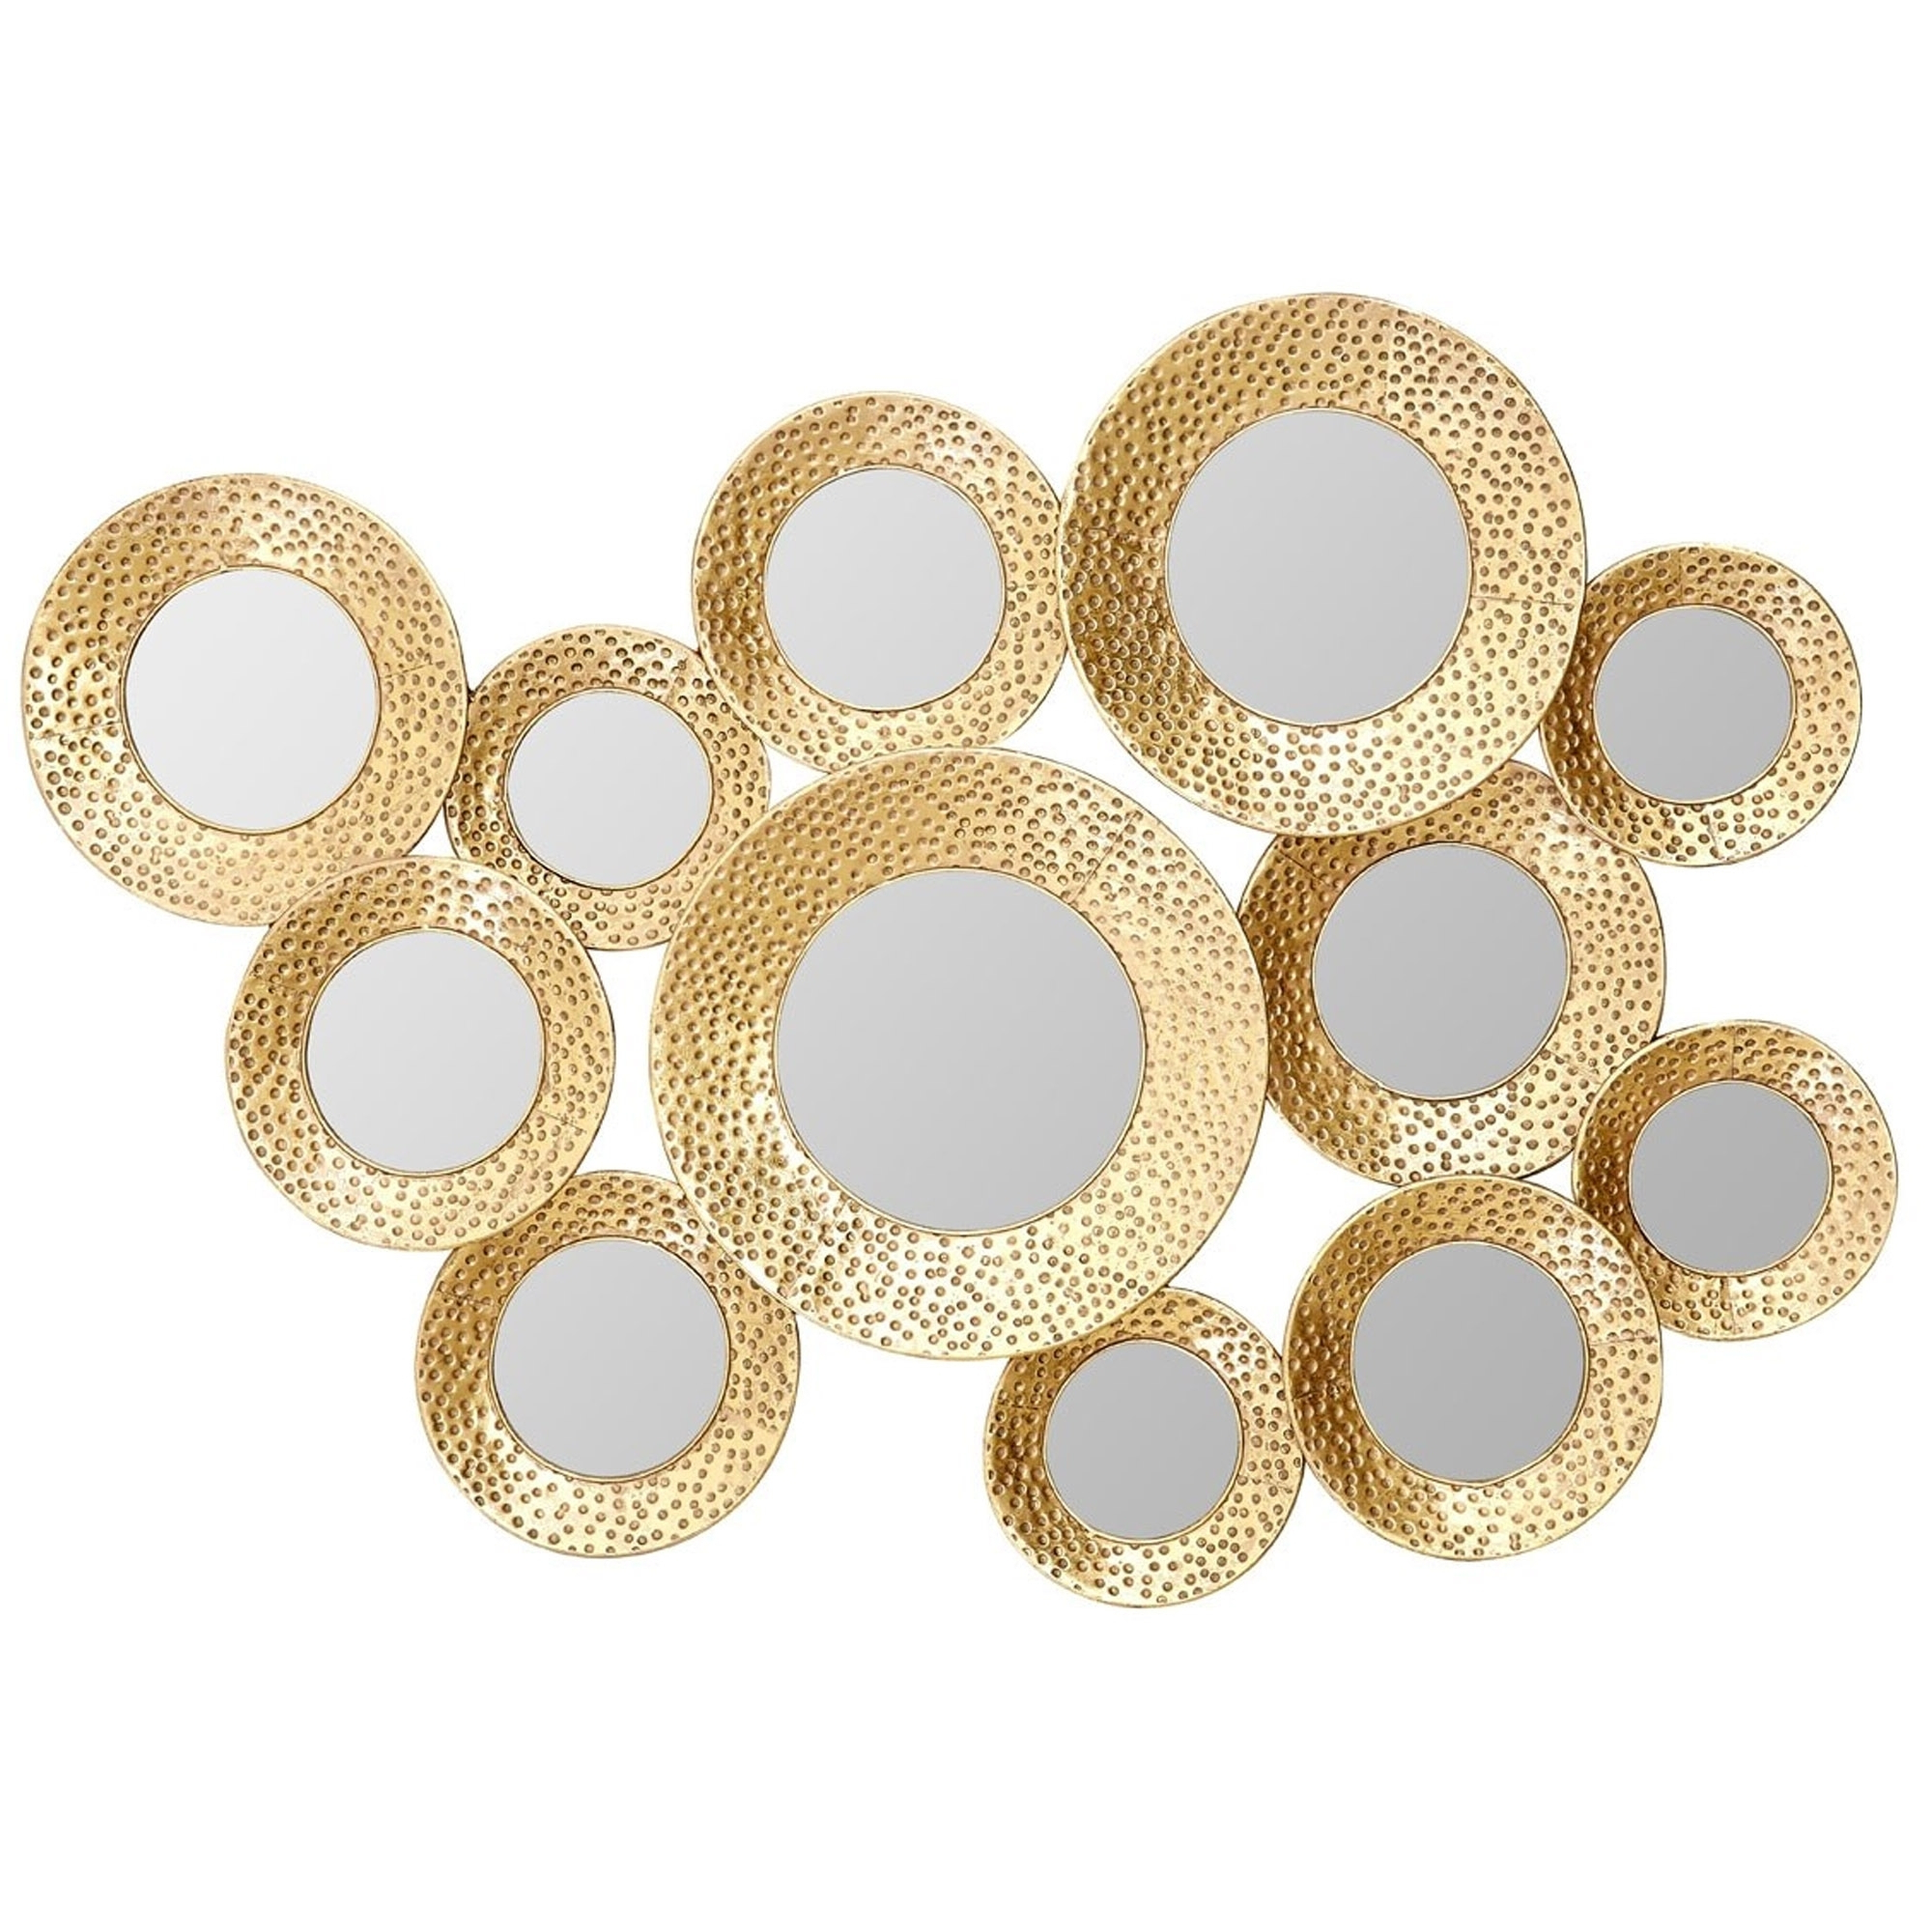 Gold Wall Mirrors Within Widely Used Marcia Multi Circle Wall Mirror – Gold (View 11 of 20)